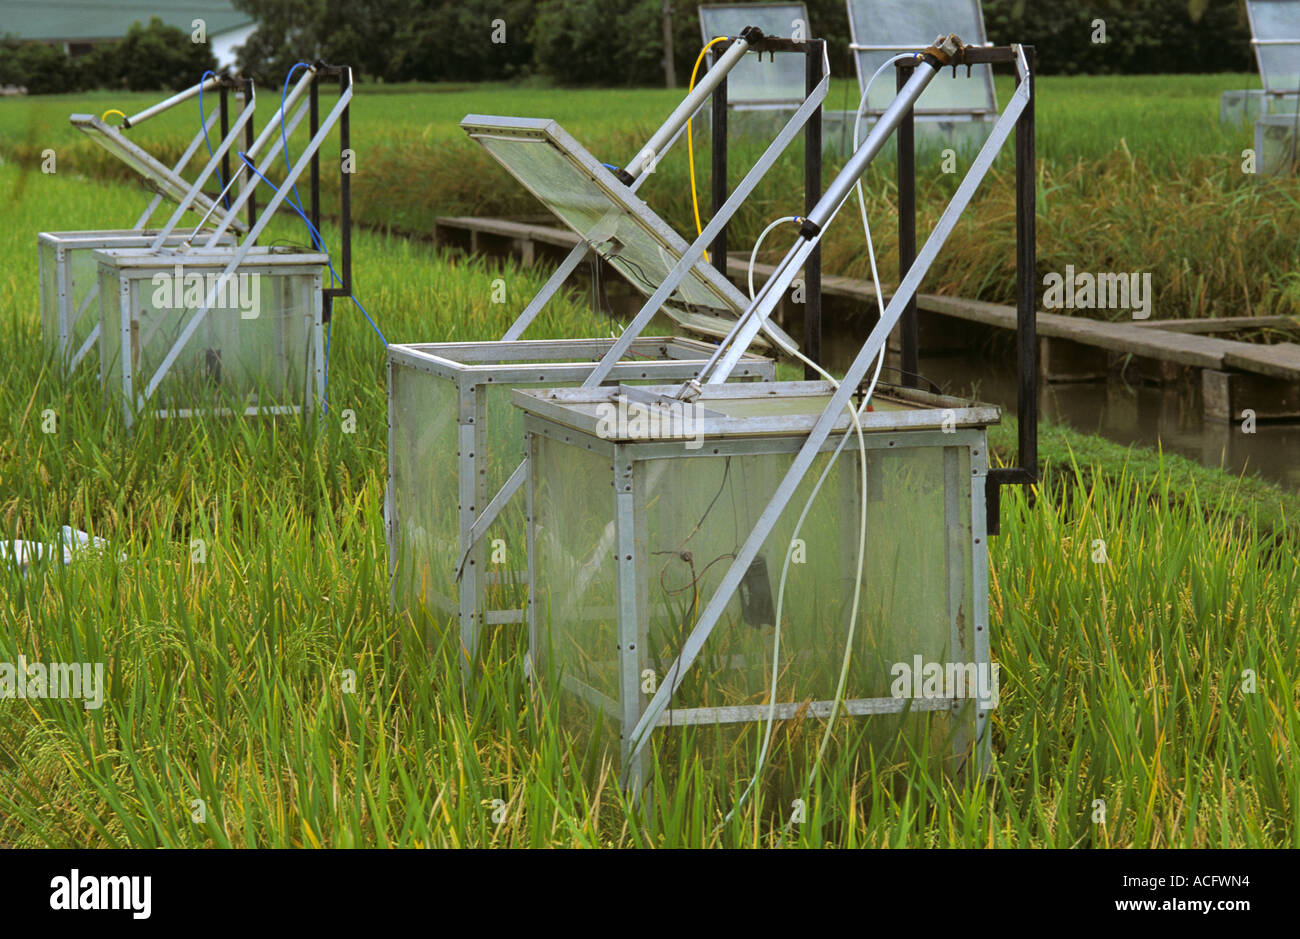 Chambers to measure methane emissions from rice paddies in the Philippines - Stock Image